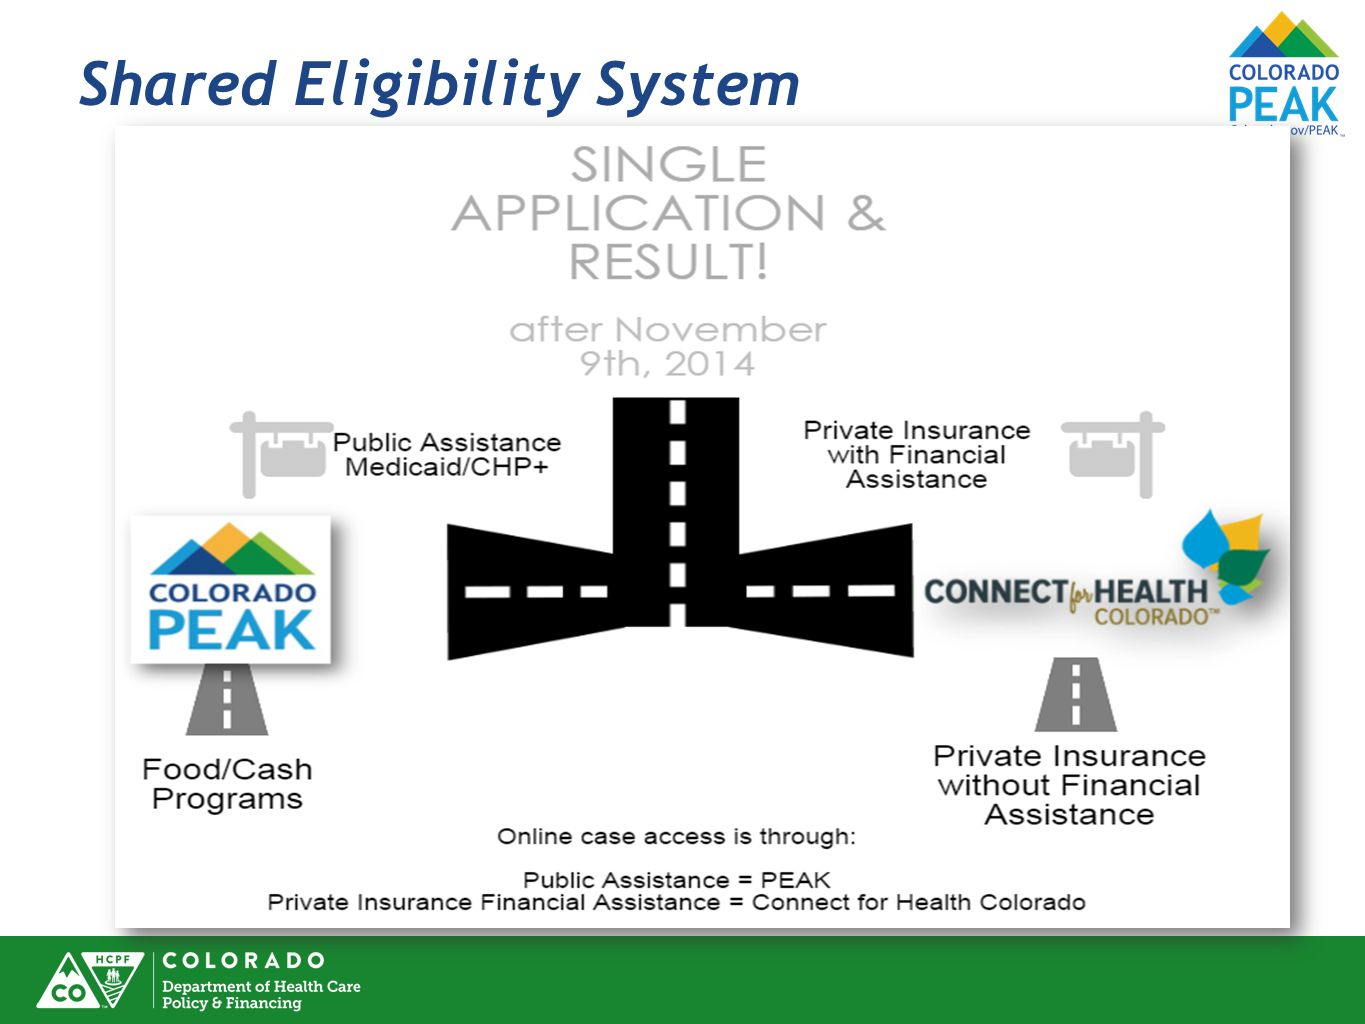 Shared Eligibility System